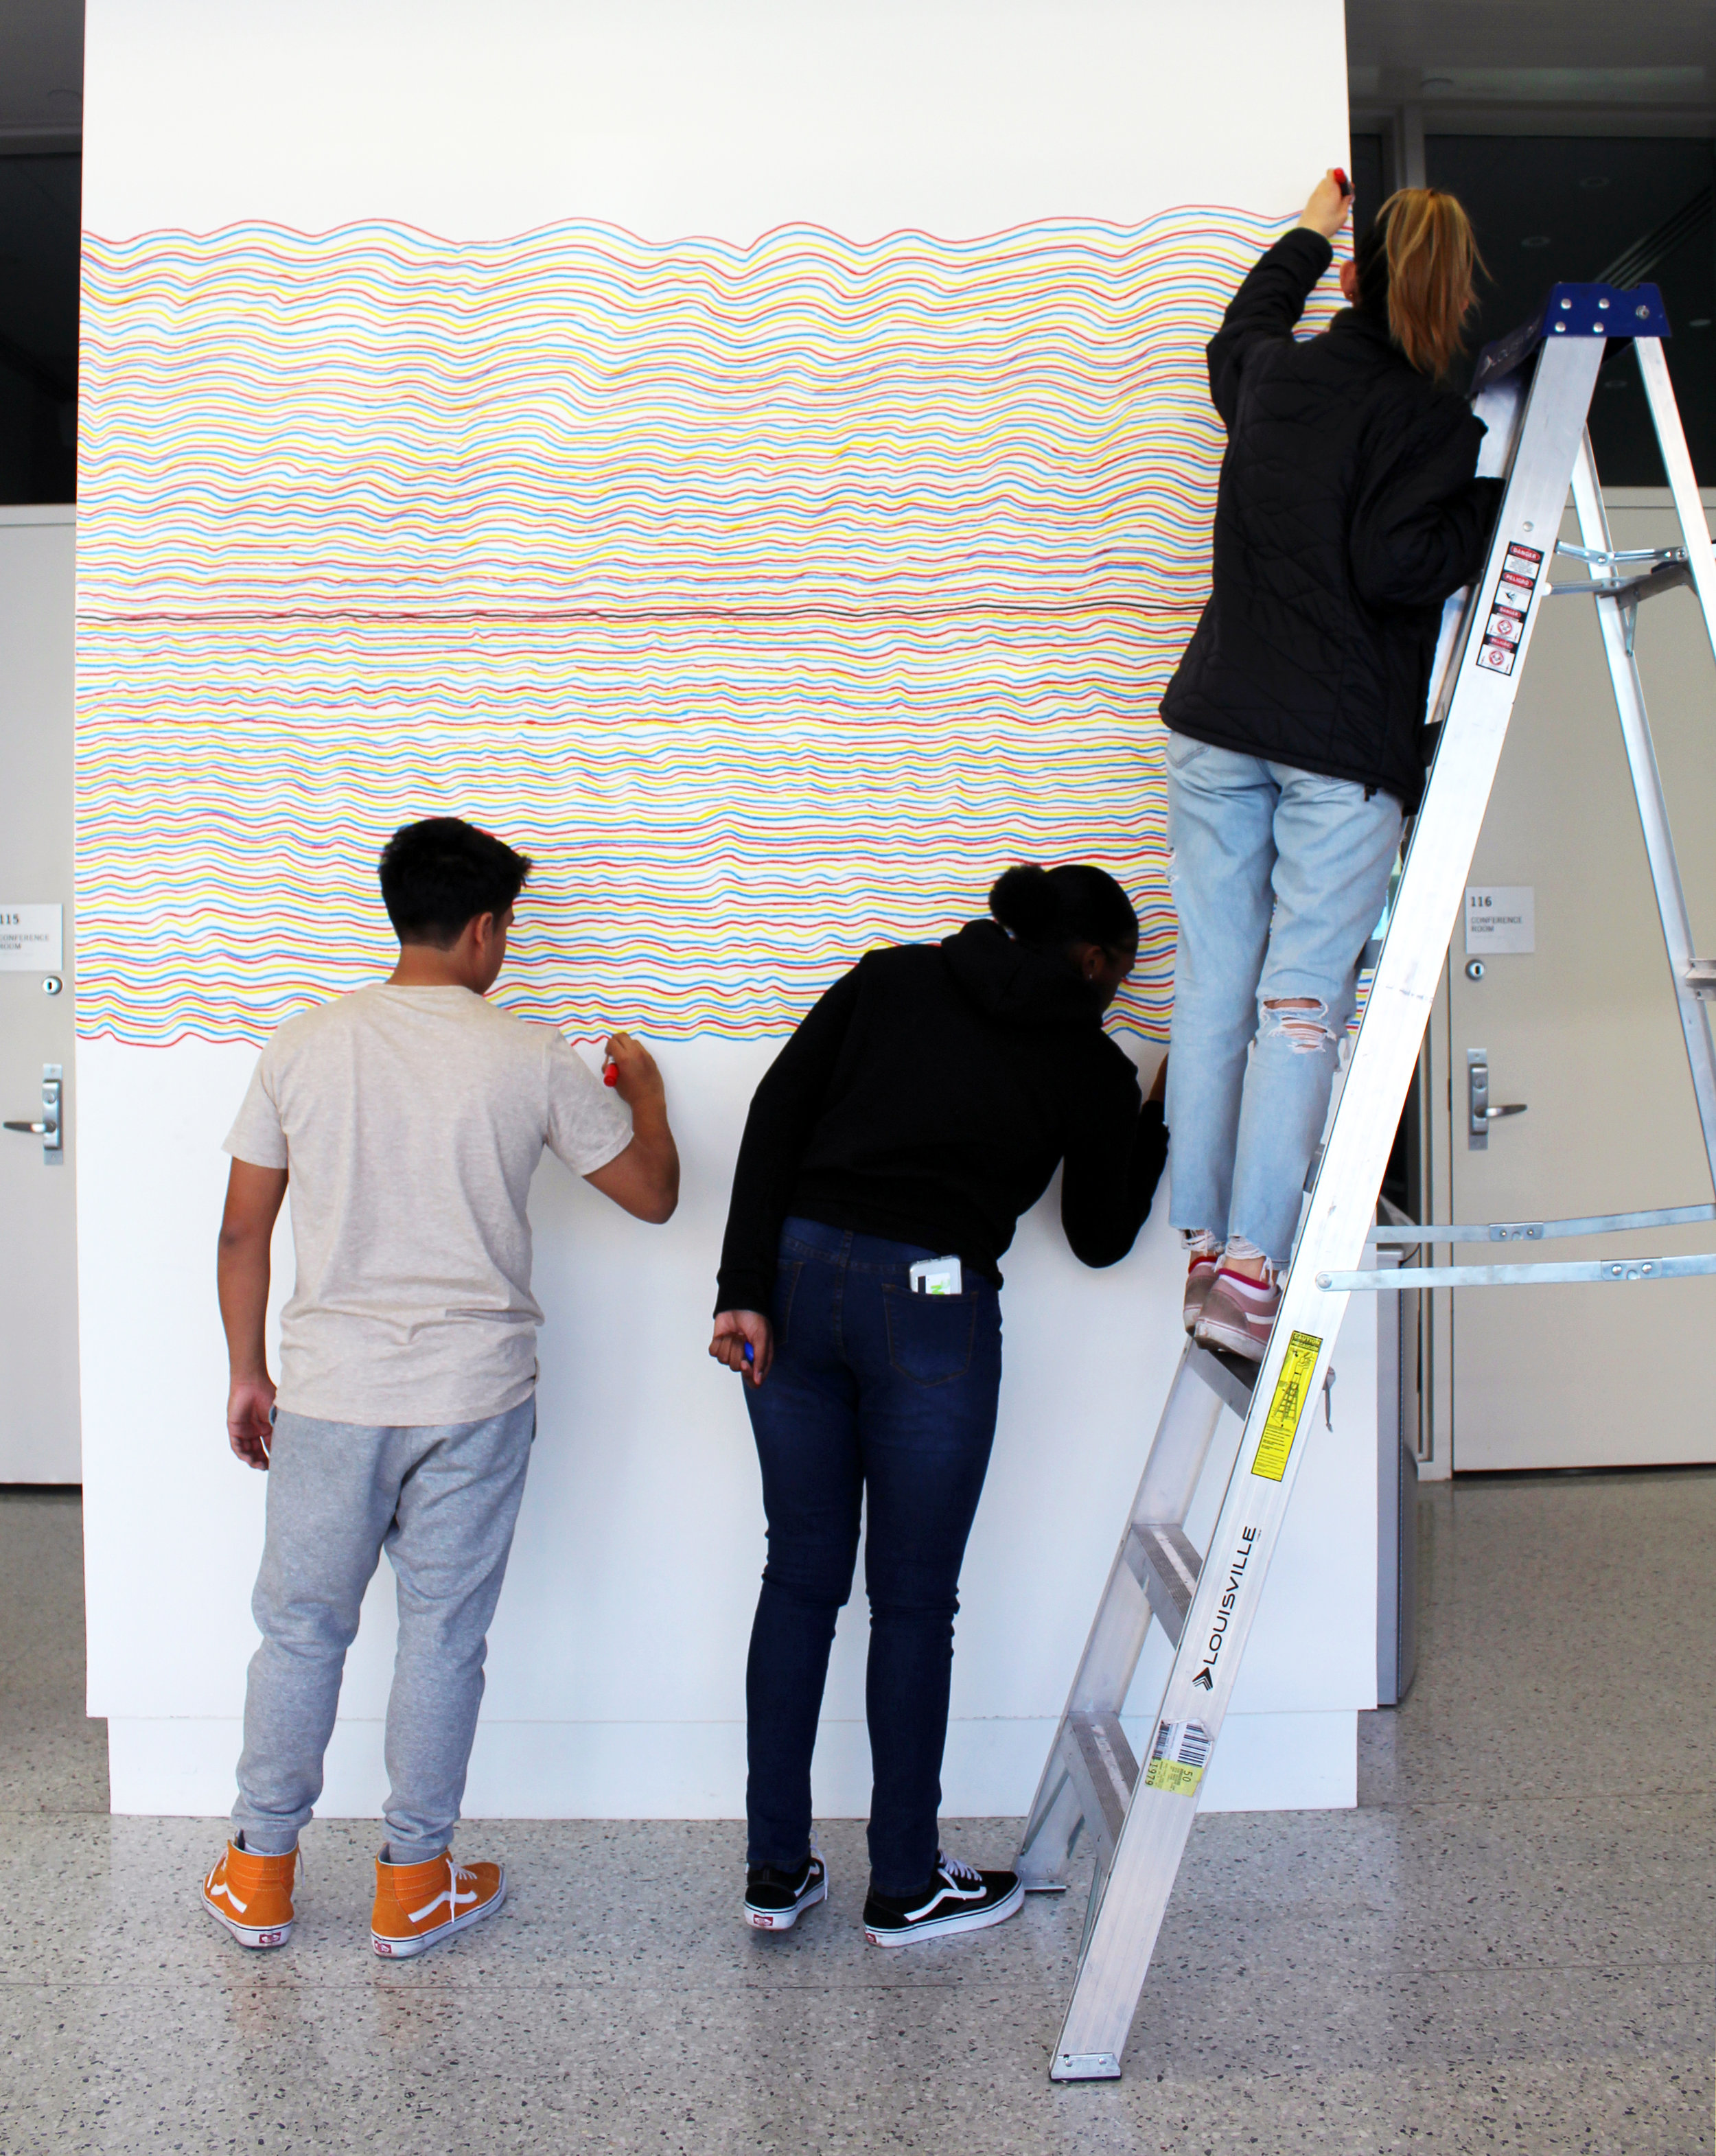 do-it_SolLeWitt_01.jpg